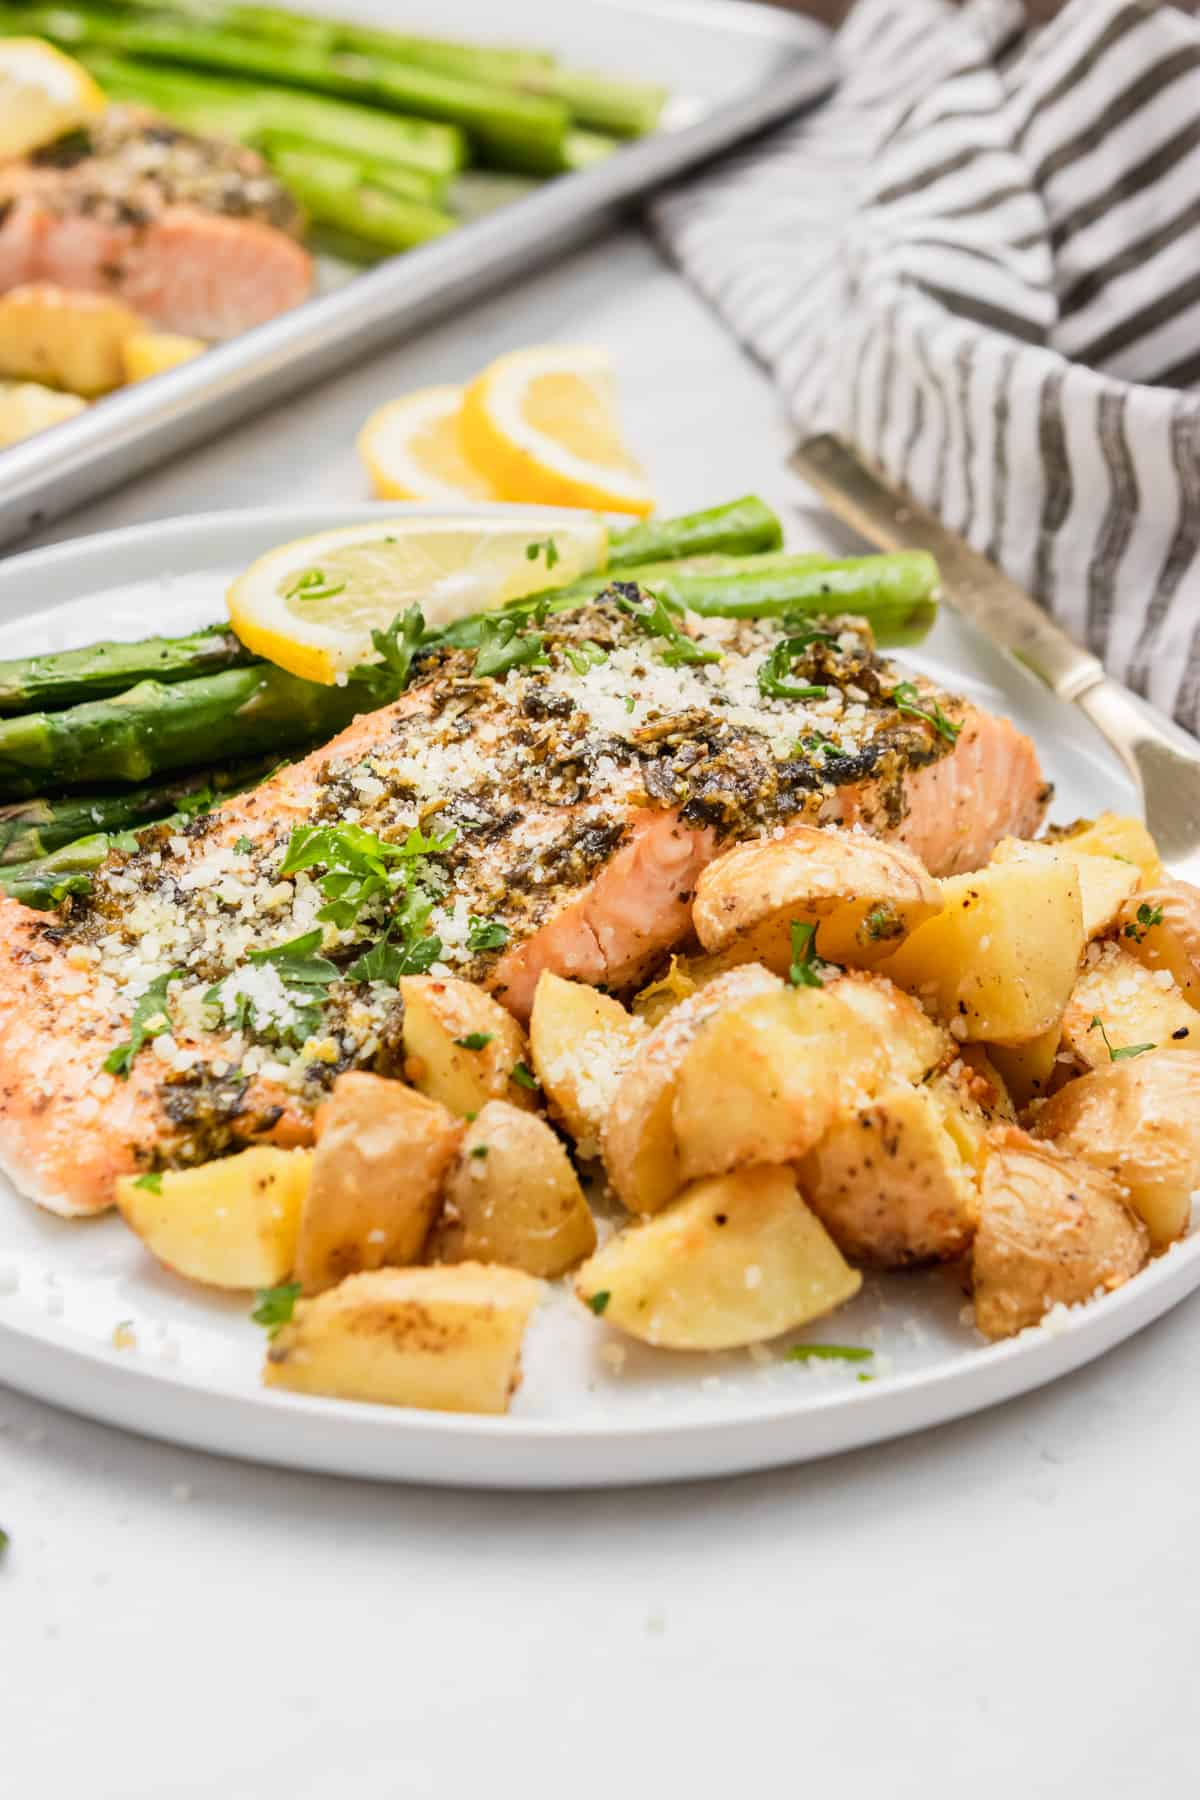 Pesto salmon, potatoes and asparagus on white plate with sheet pan in background.